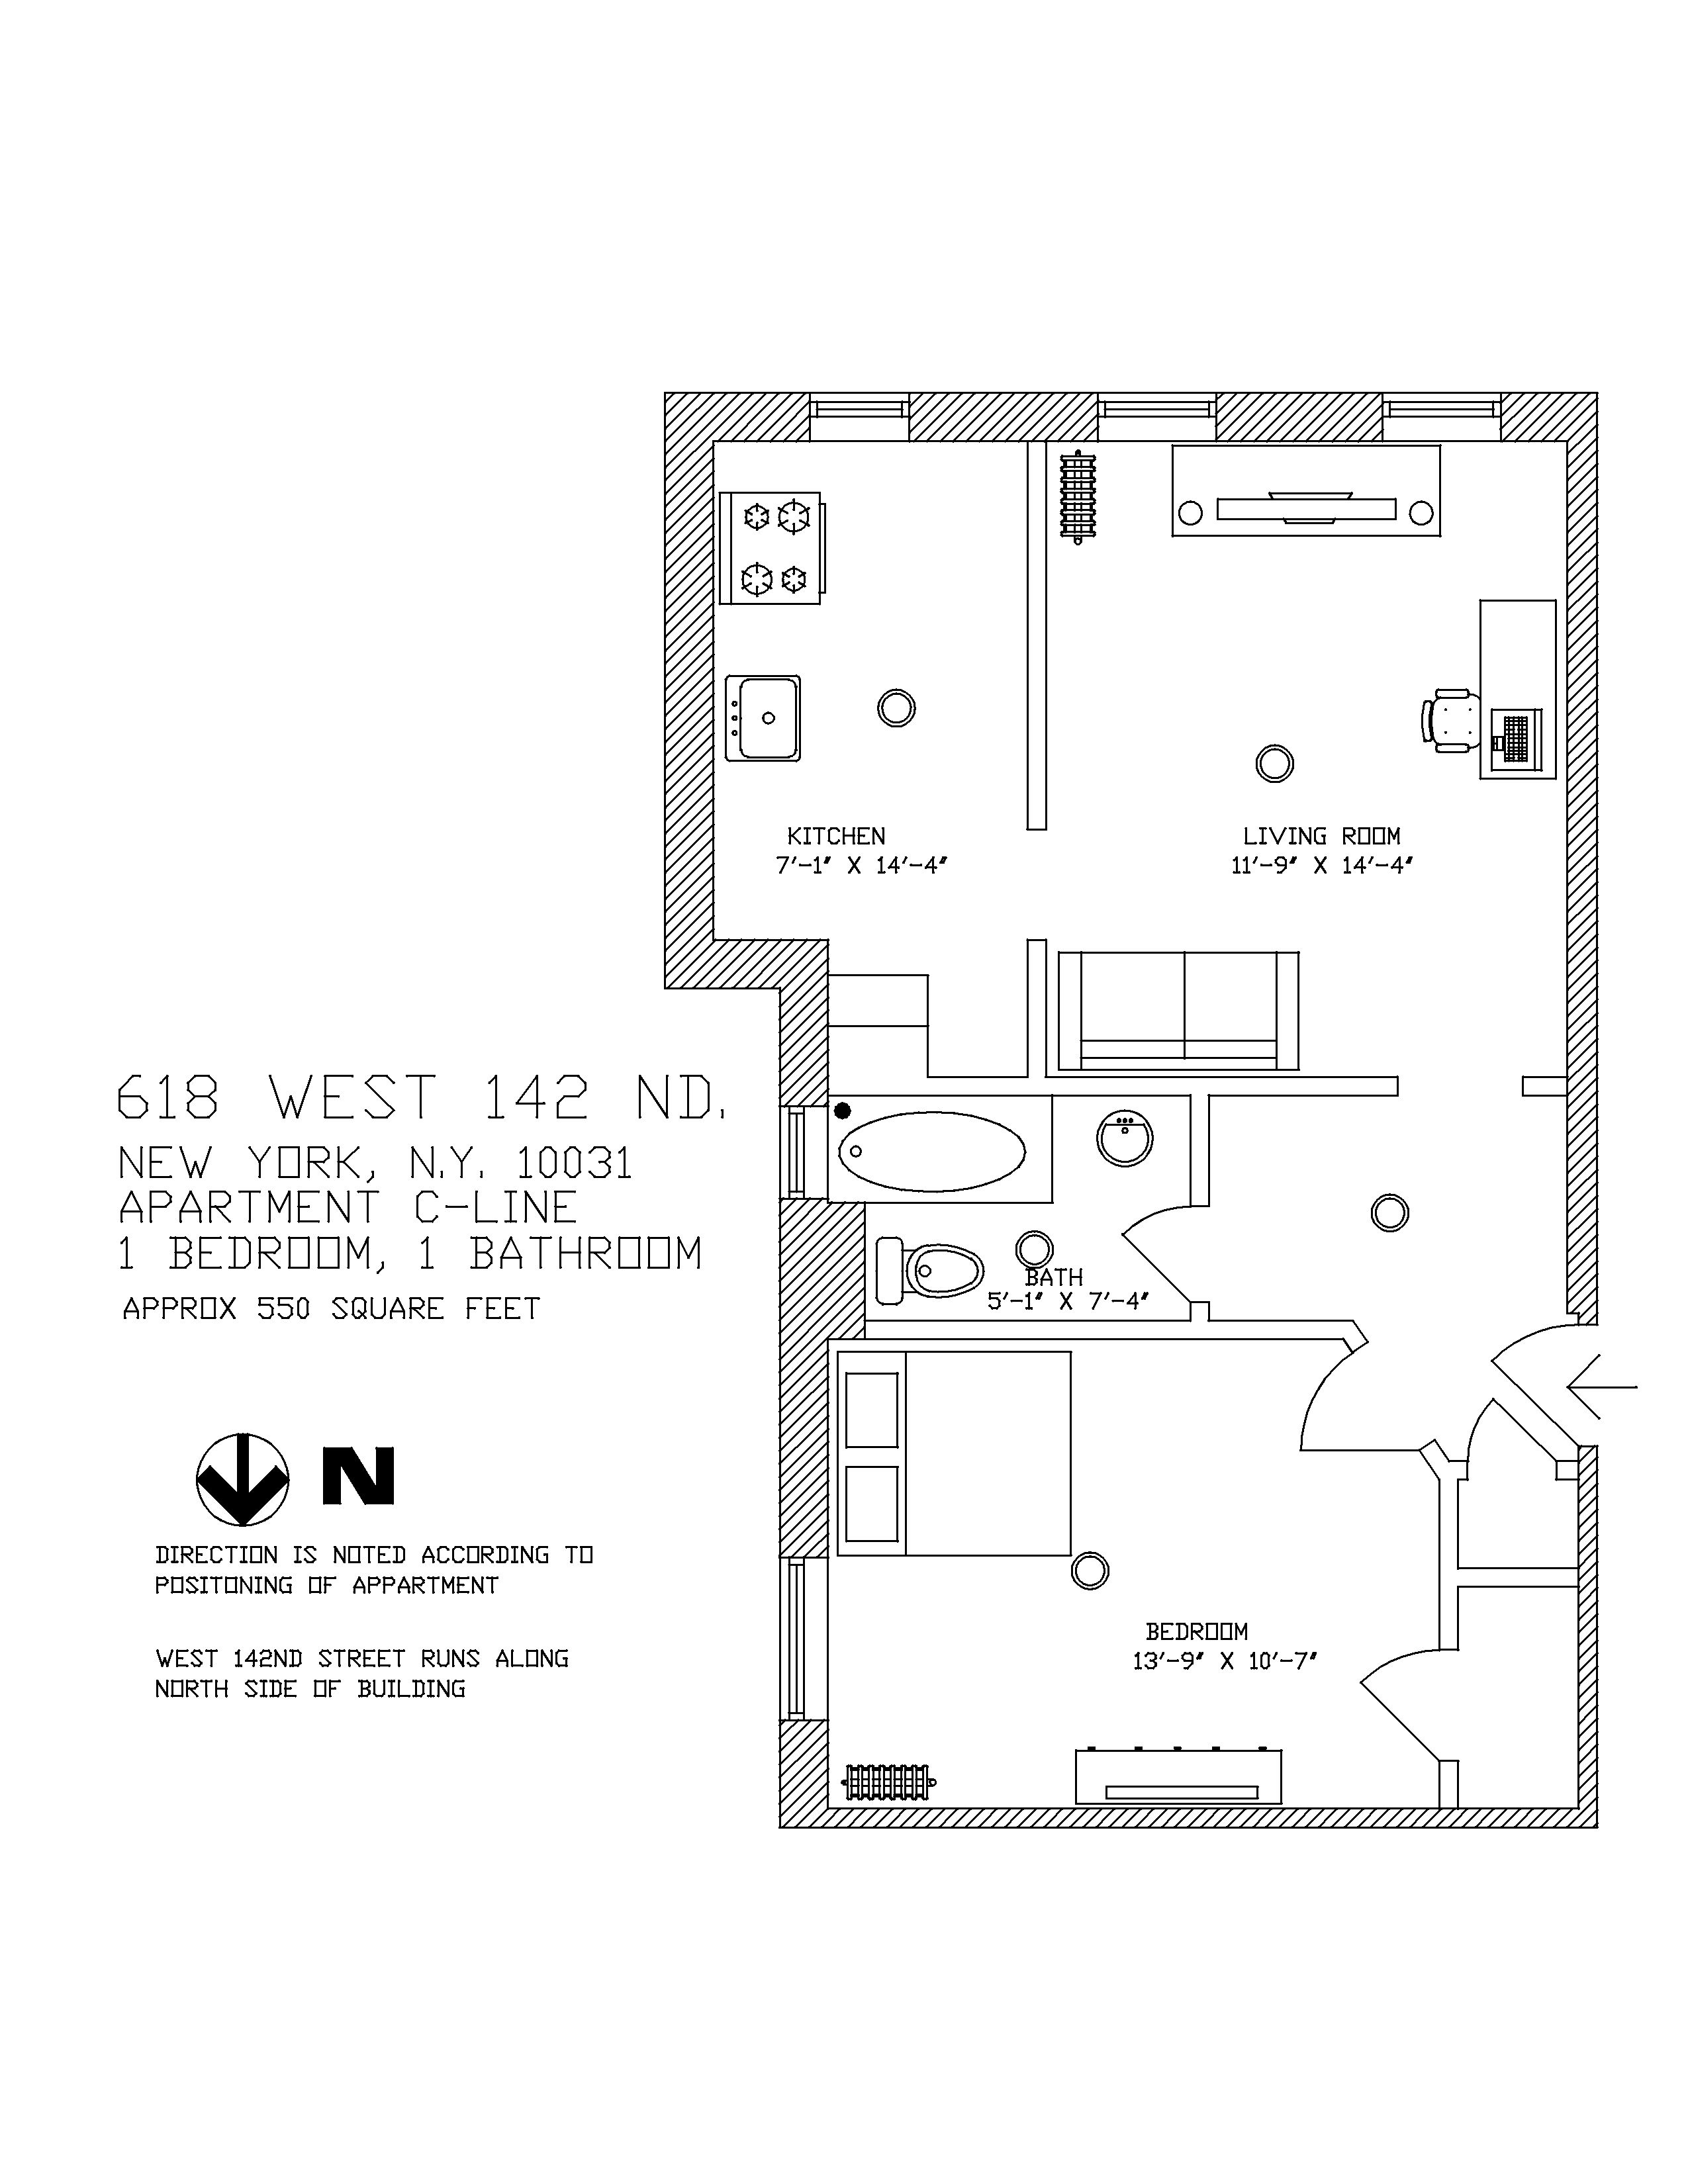 618 W 142nd St New York Ny 10031 6619 Rent